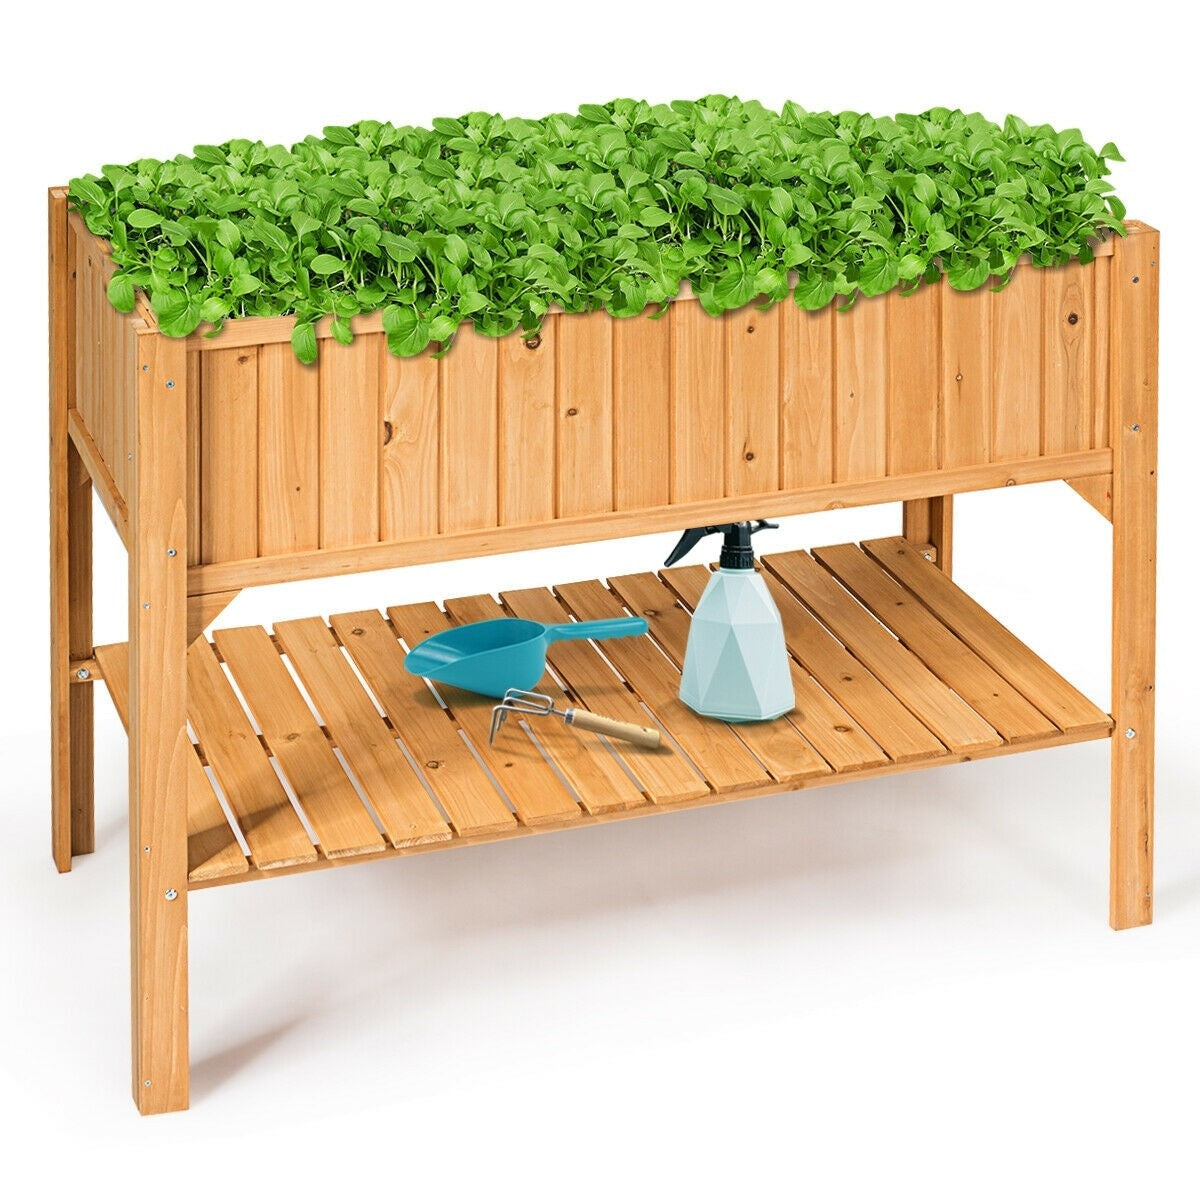 Raised Garden Bed Stand Elevated Wood Planter Box Shelf